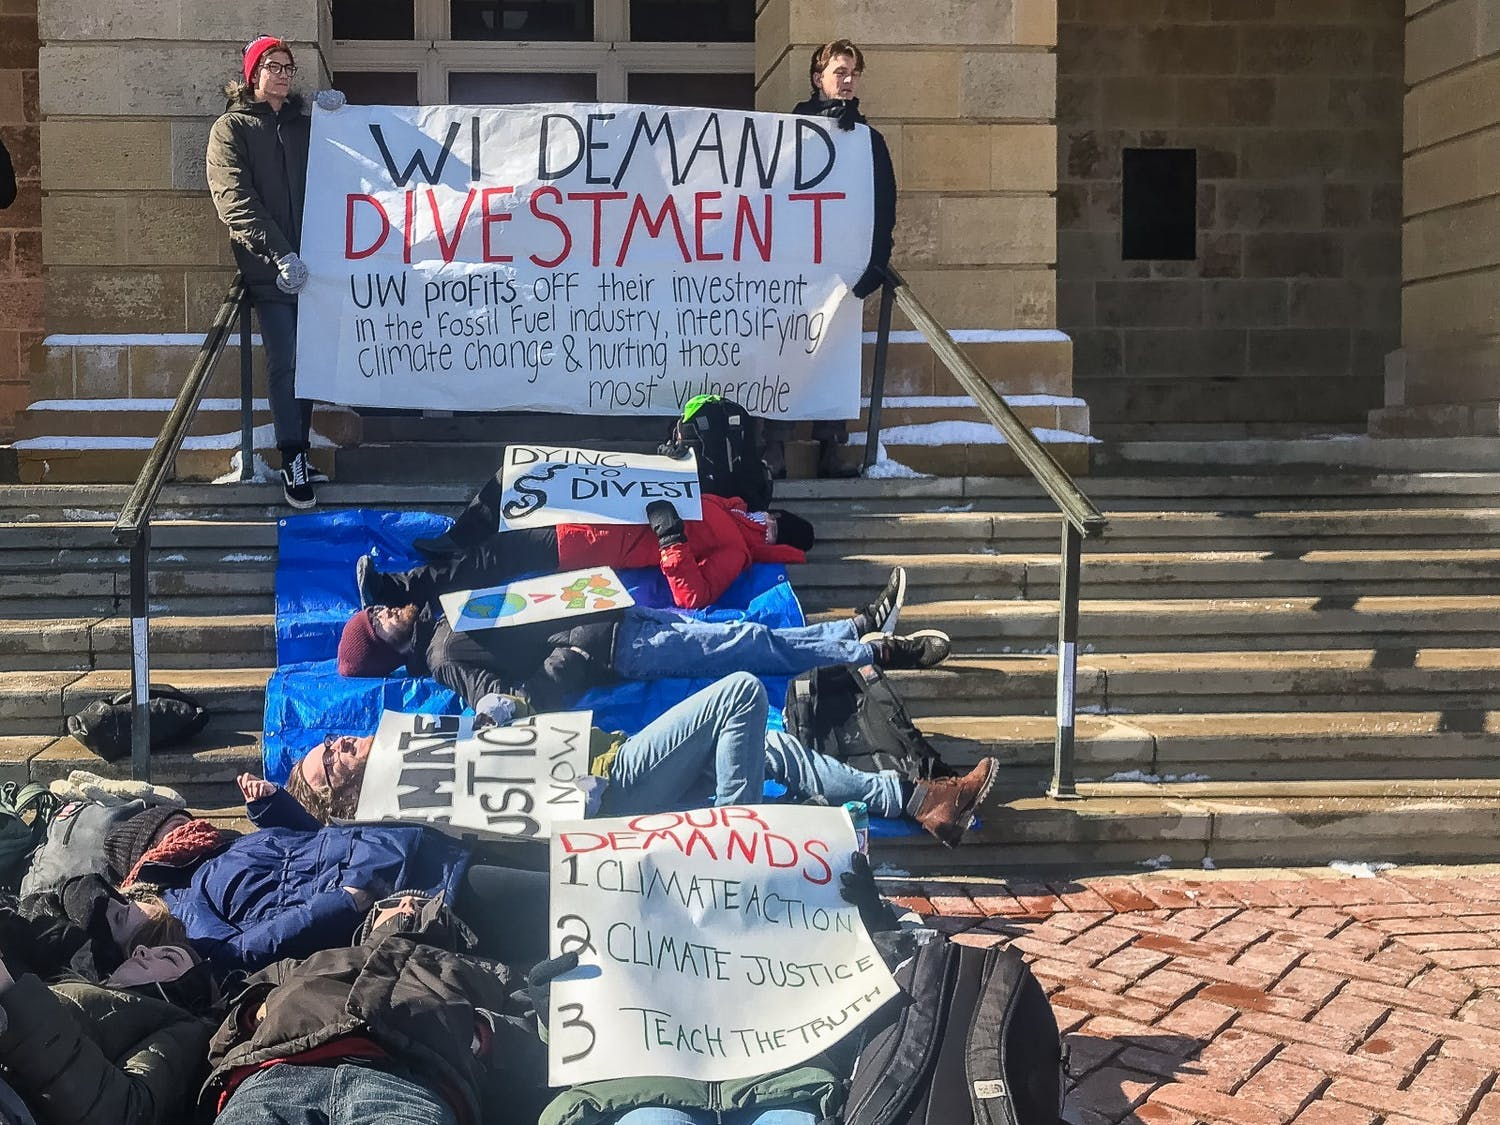 Calls for divestment don't come from the top, but rather from student activists